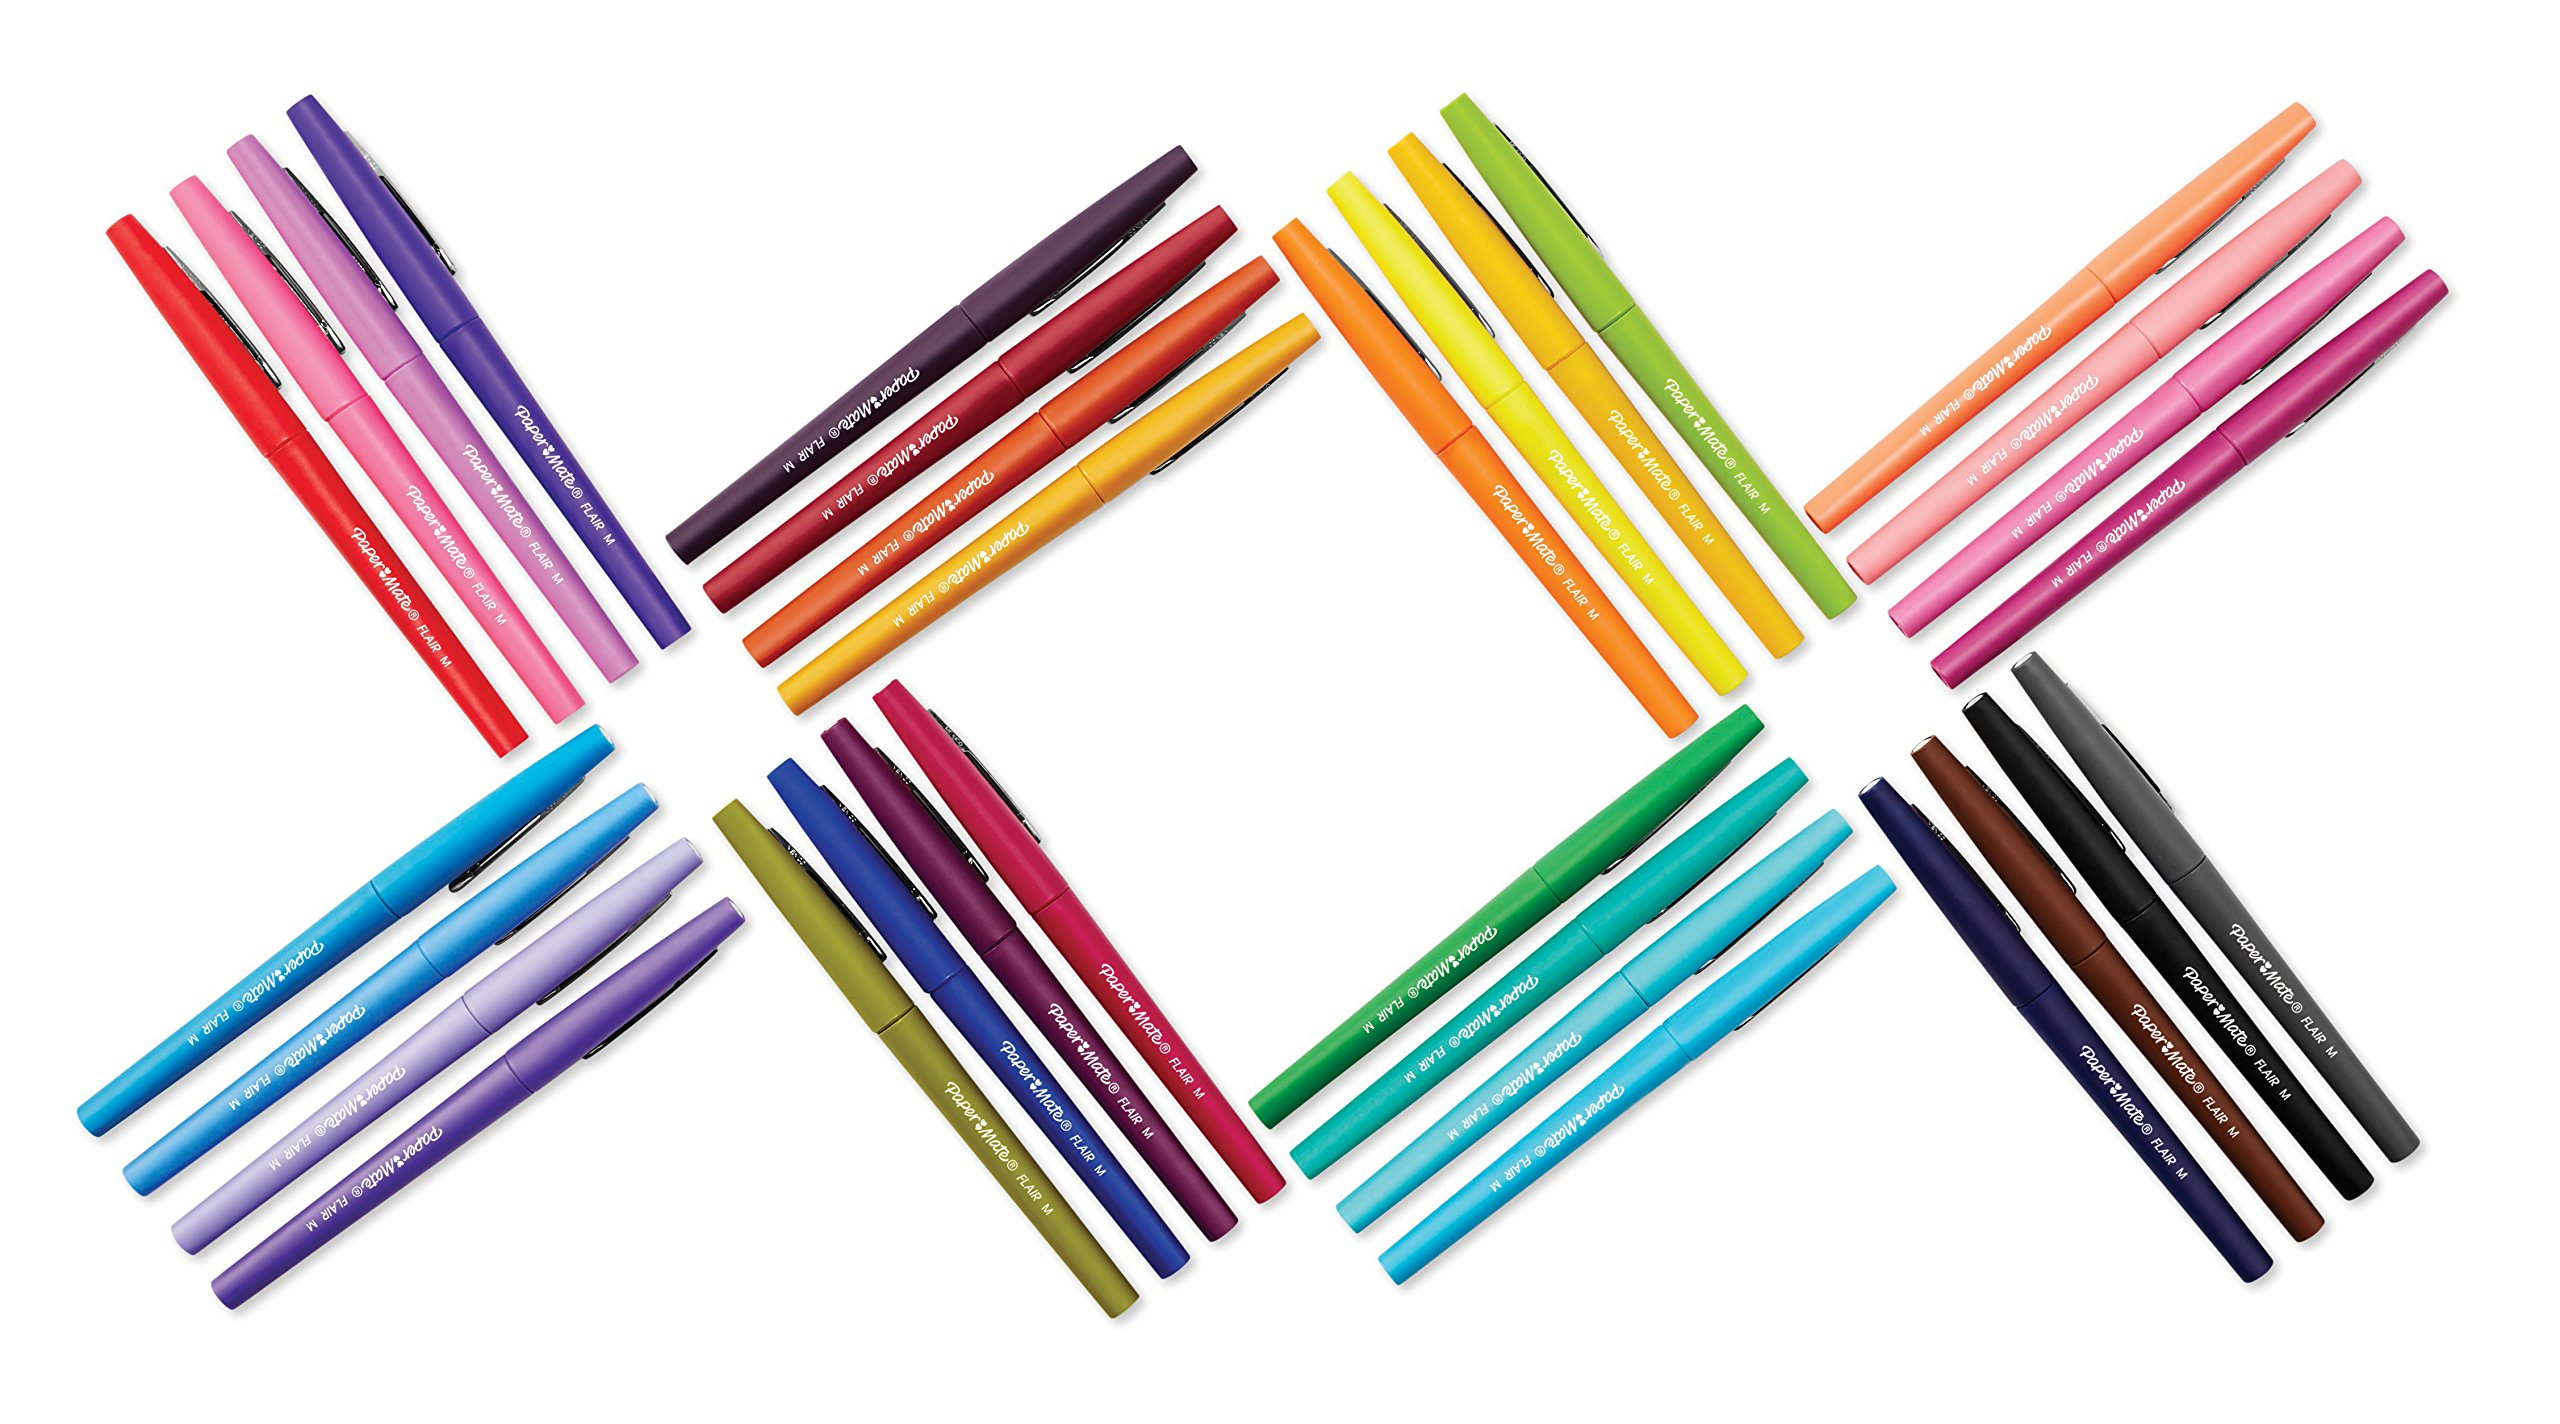 Paper Mate Flair Felt Tip Pens, Medium Point, Limited Edition Candy Pop Pack, Pack of 32 (1979425) by Paper Mate (Image #7)